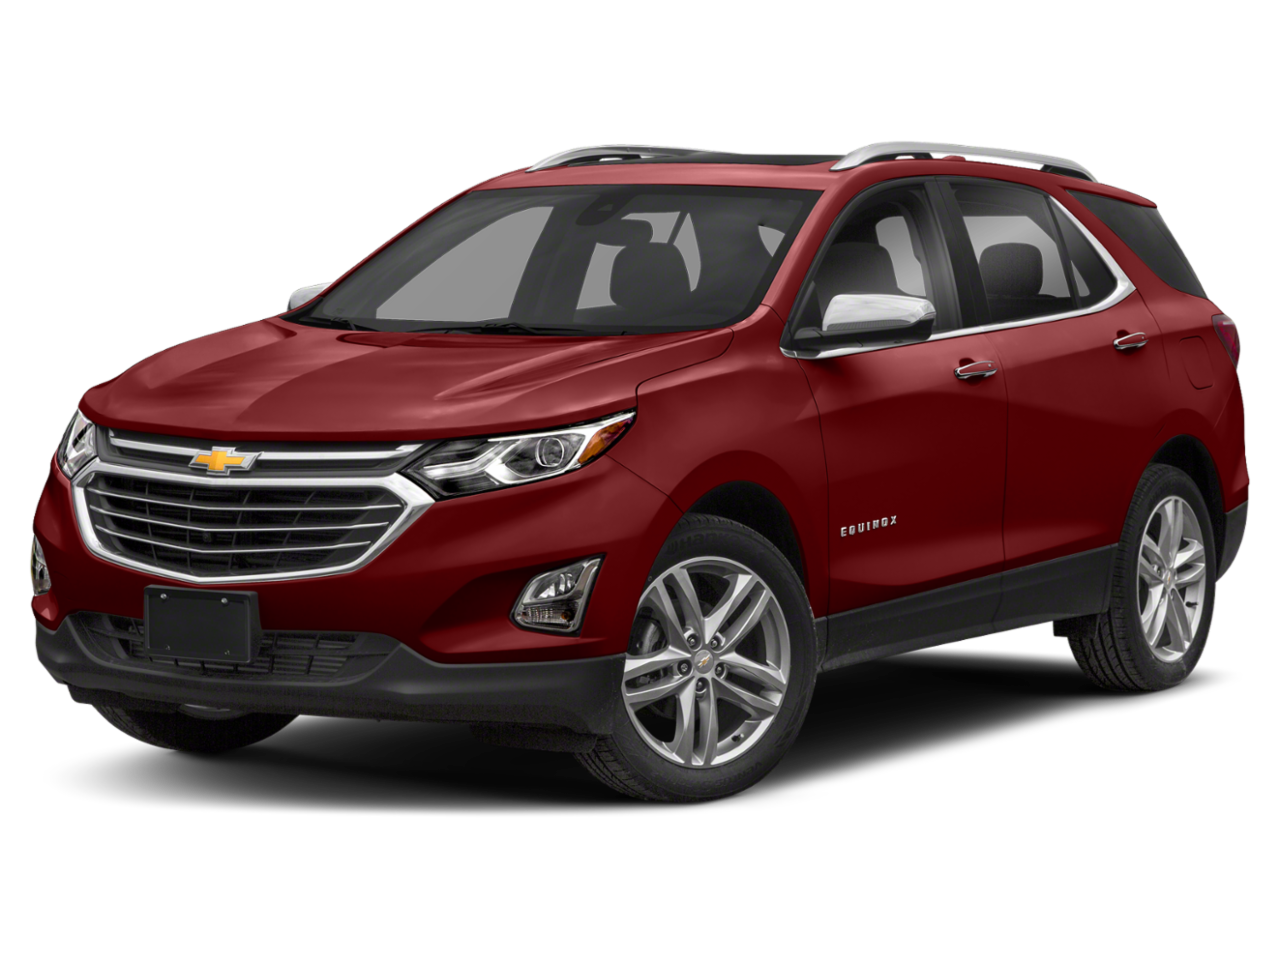 Capitol Chevrolet Montgomery Alabama S Top Chevy Dealer